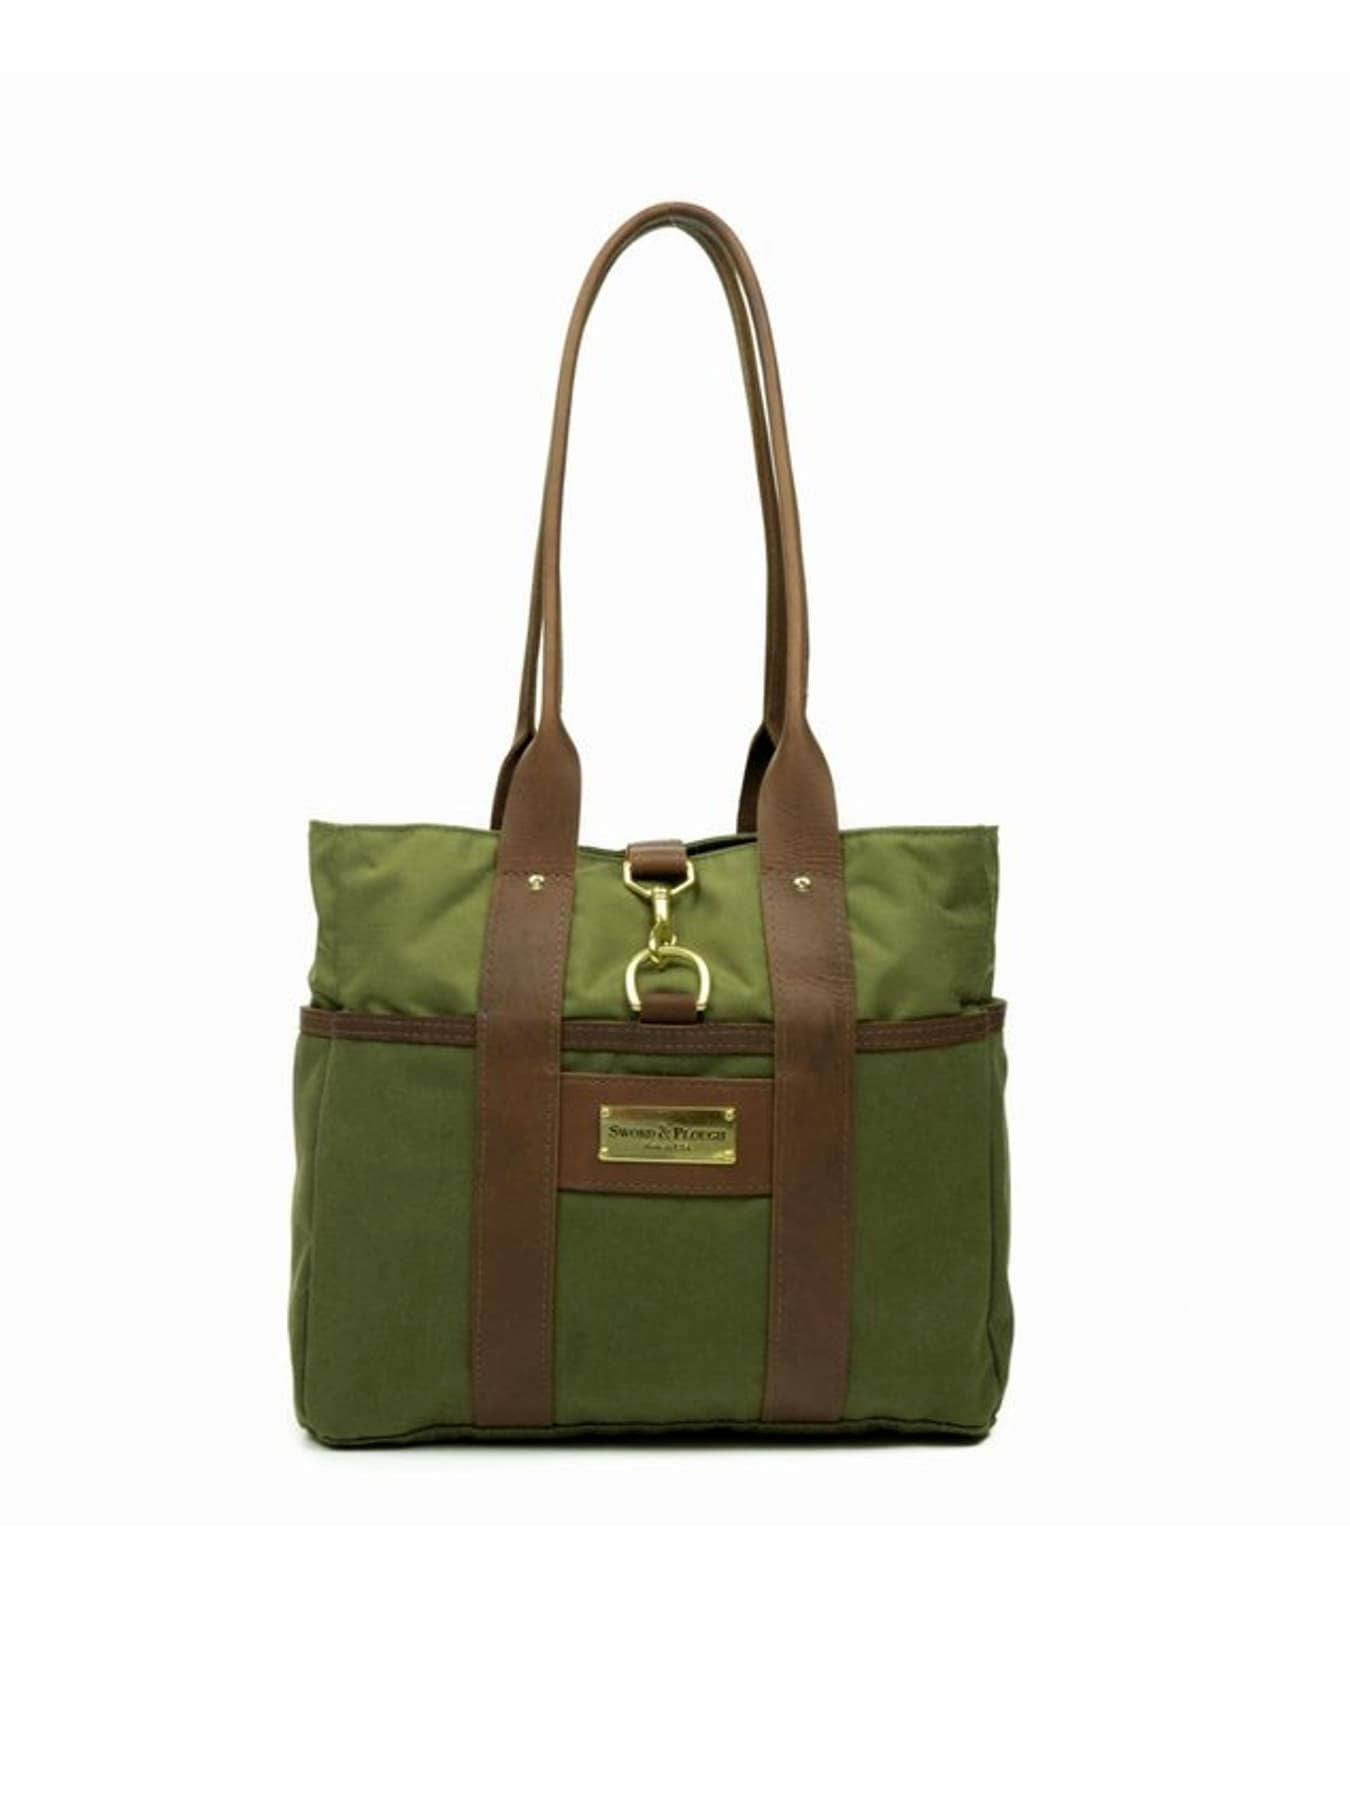 Green Water Resistant Canvas and Leather Tote Bag